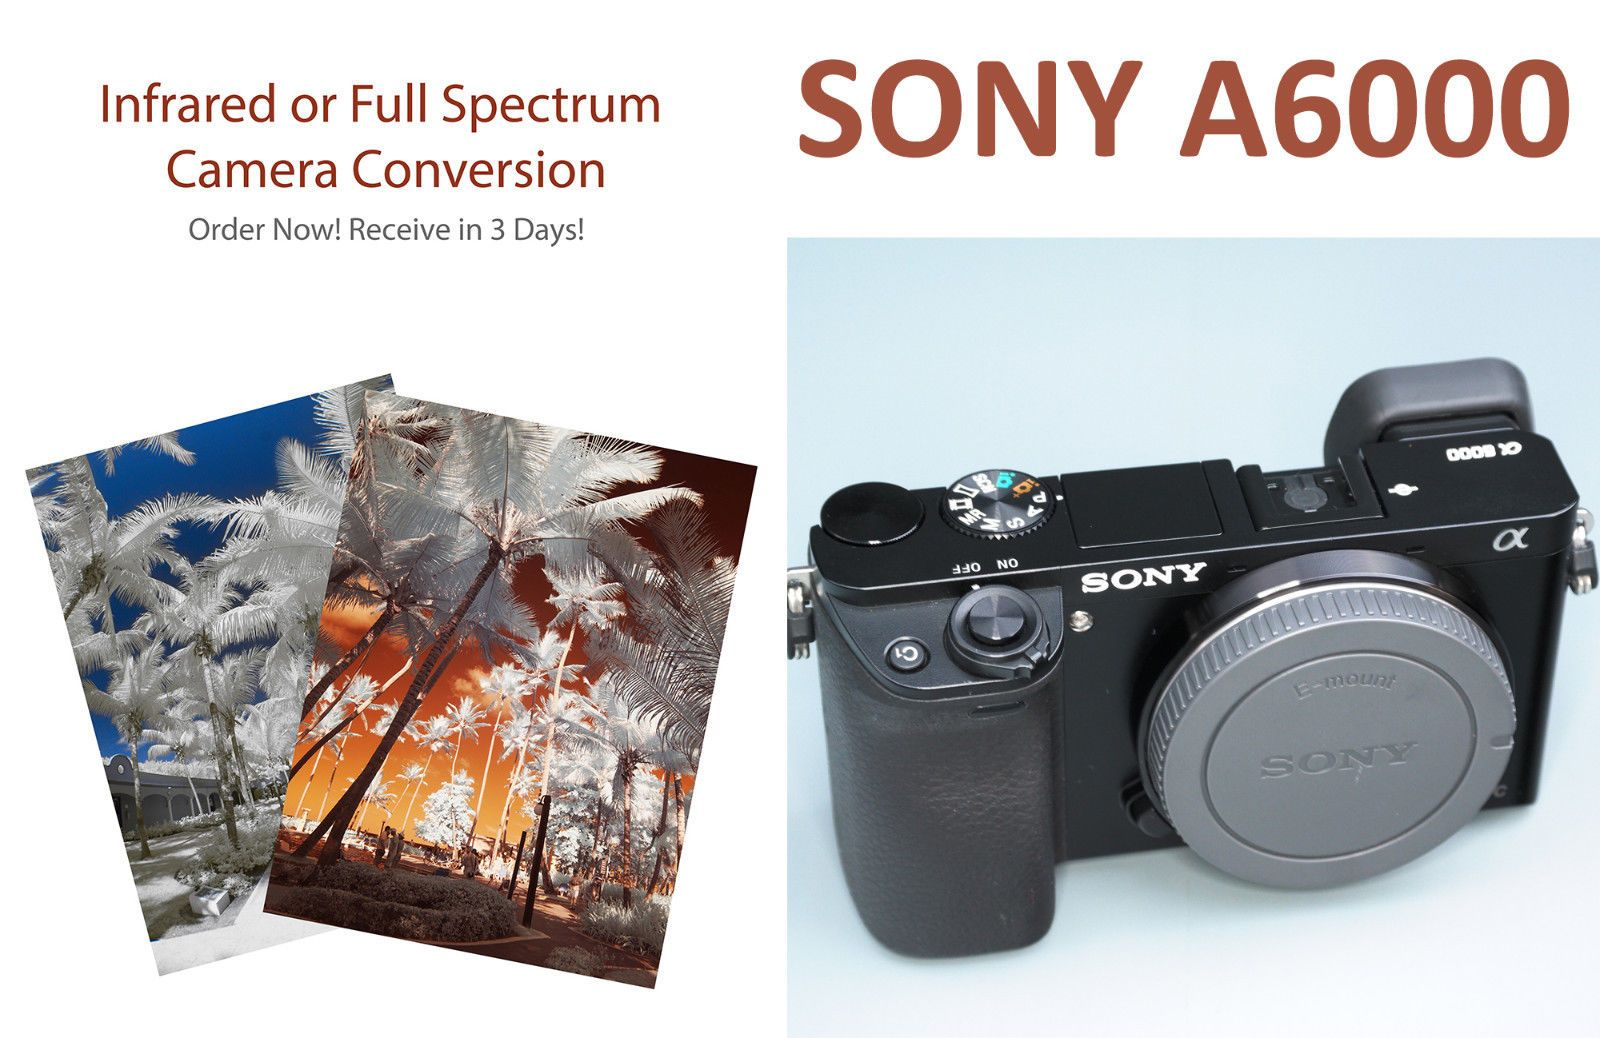 Small Crop Of Sony A6000 Refurbished